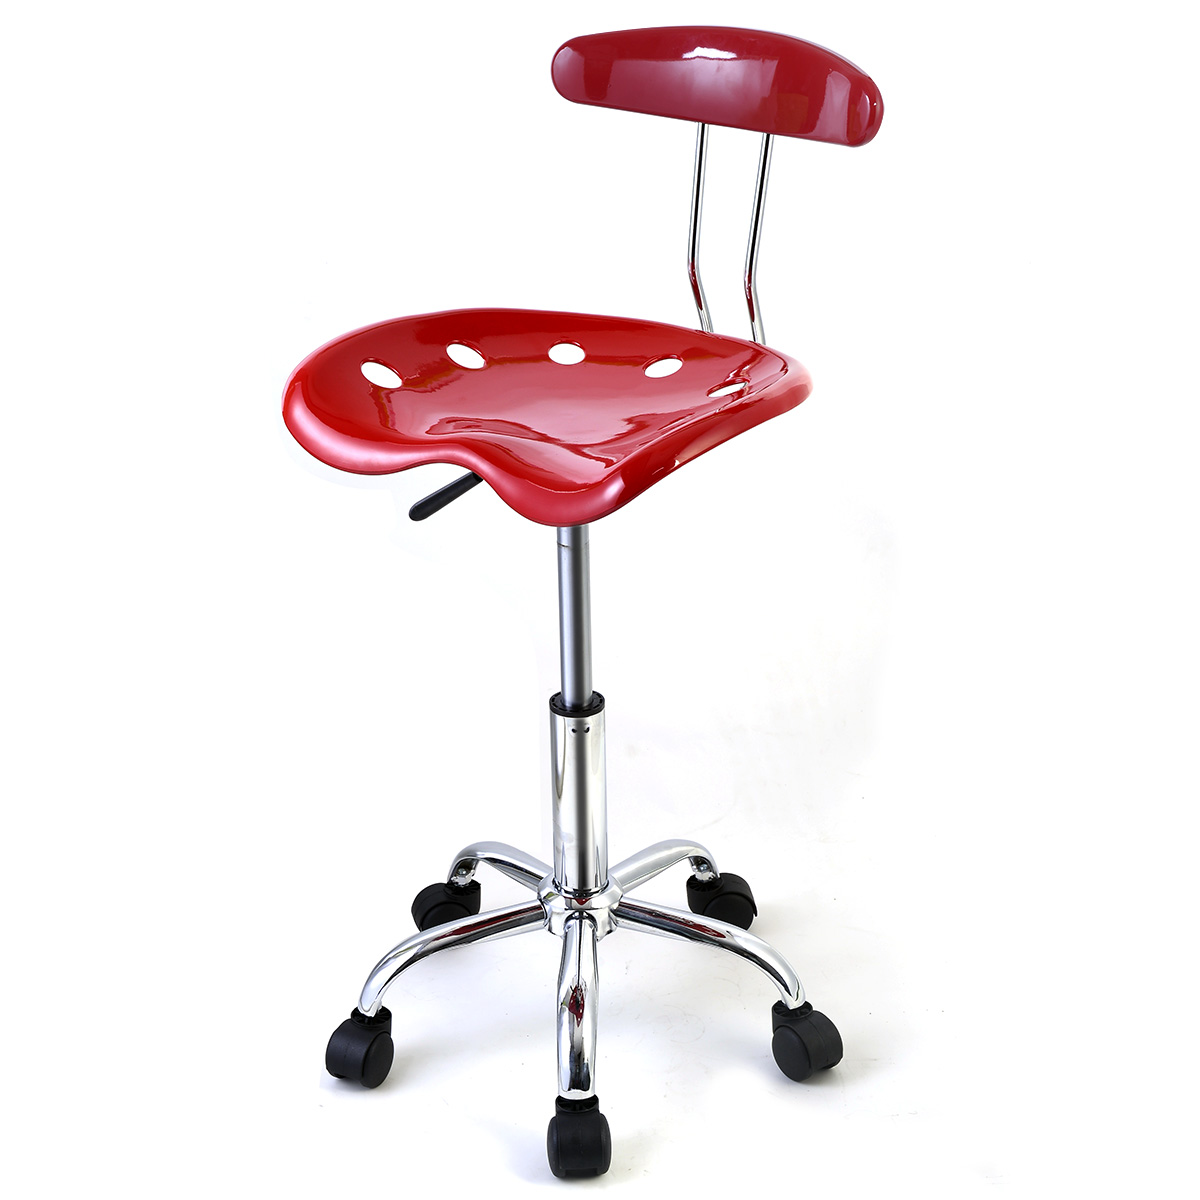 Brilliant Costway Abs Tractor Seat Adjustable Bar Stools Swivel Chrome Kitchen Breakfast Red Gmtry Best Dining Table And Chair Ideas Images Gmtryco